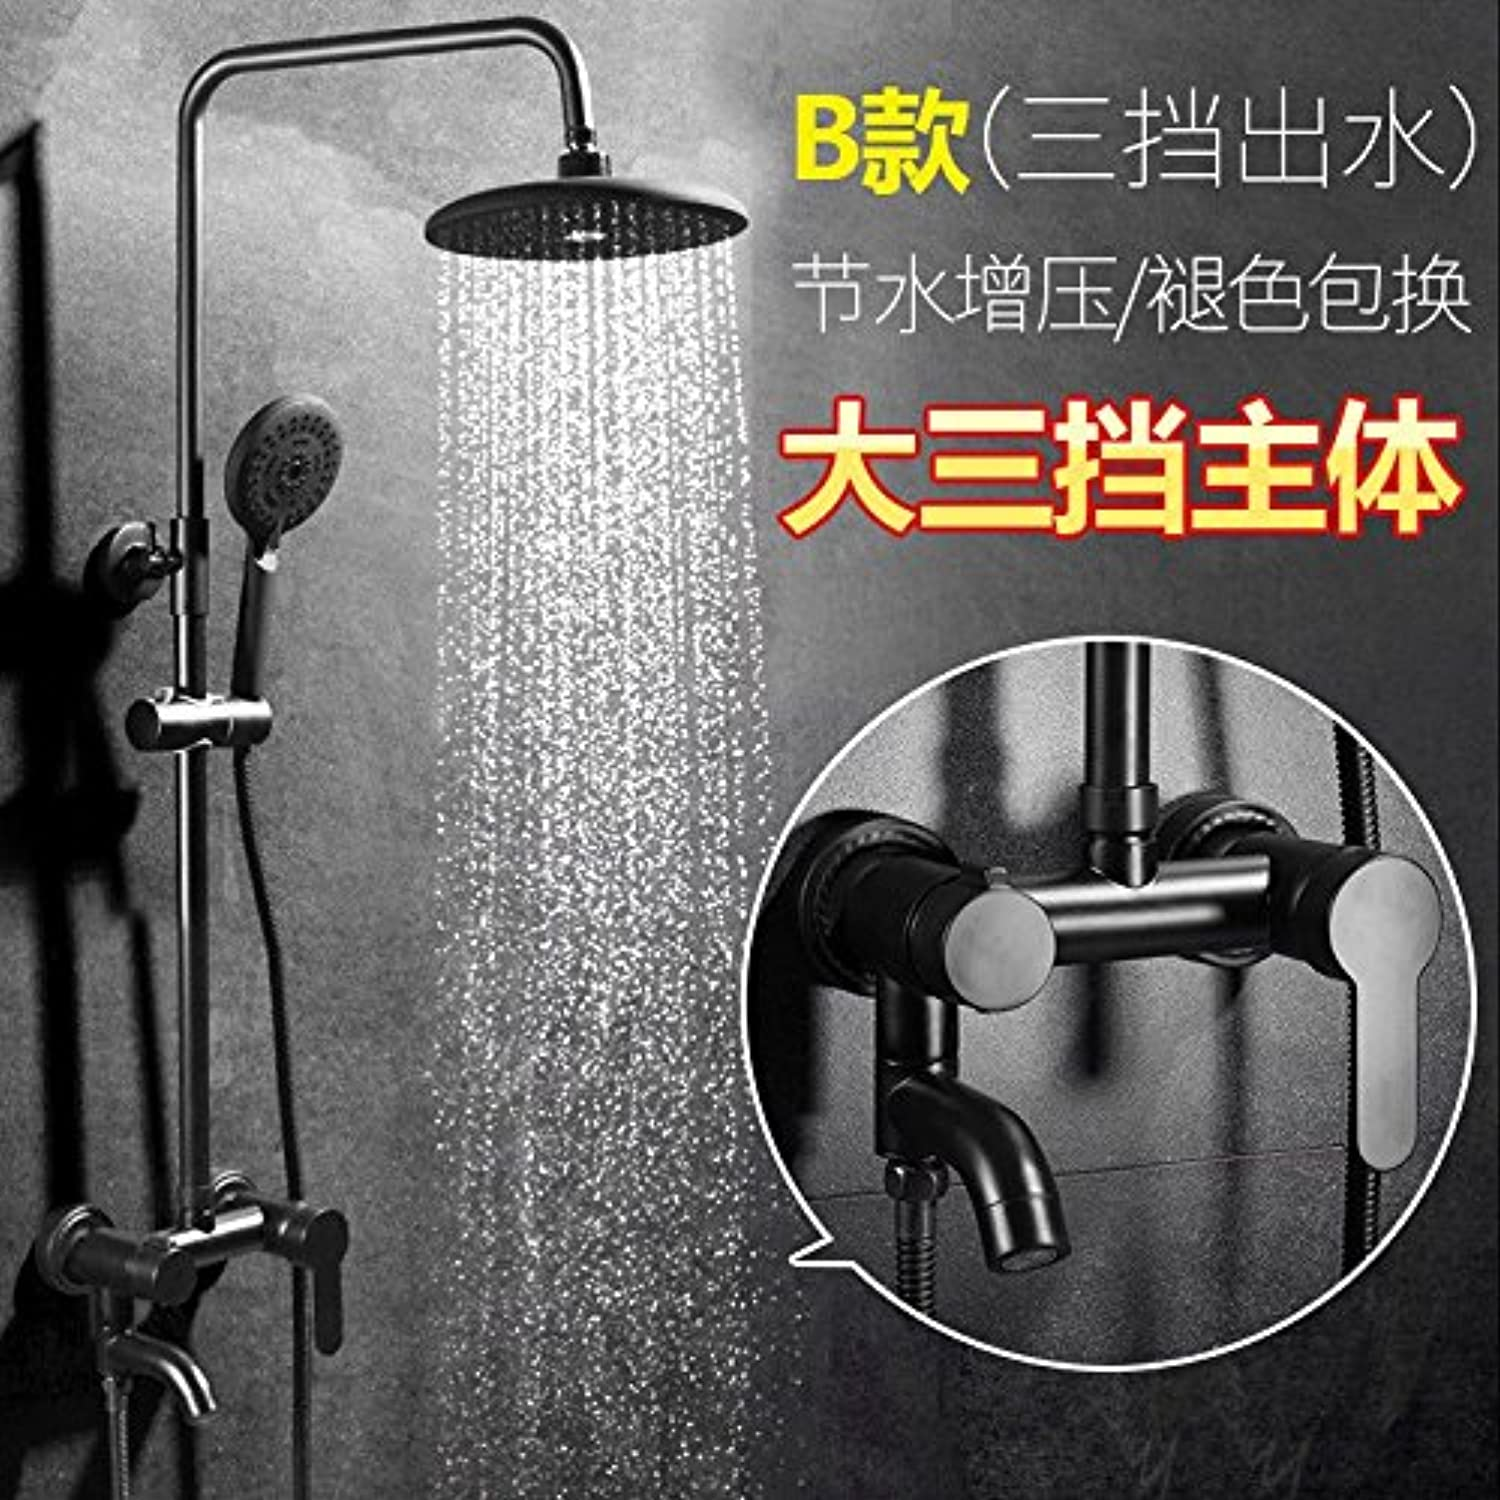 Hlluya Professional Sink Mixer Tap Kitchen Faucet Black shower full copper hot and cold mixer lift tip heated showers set B